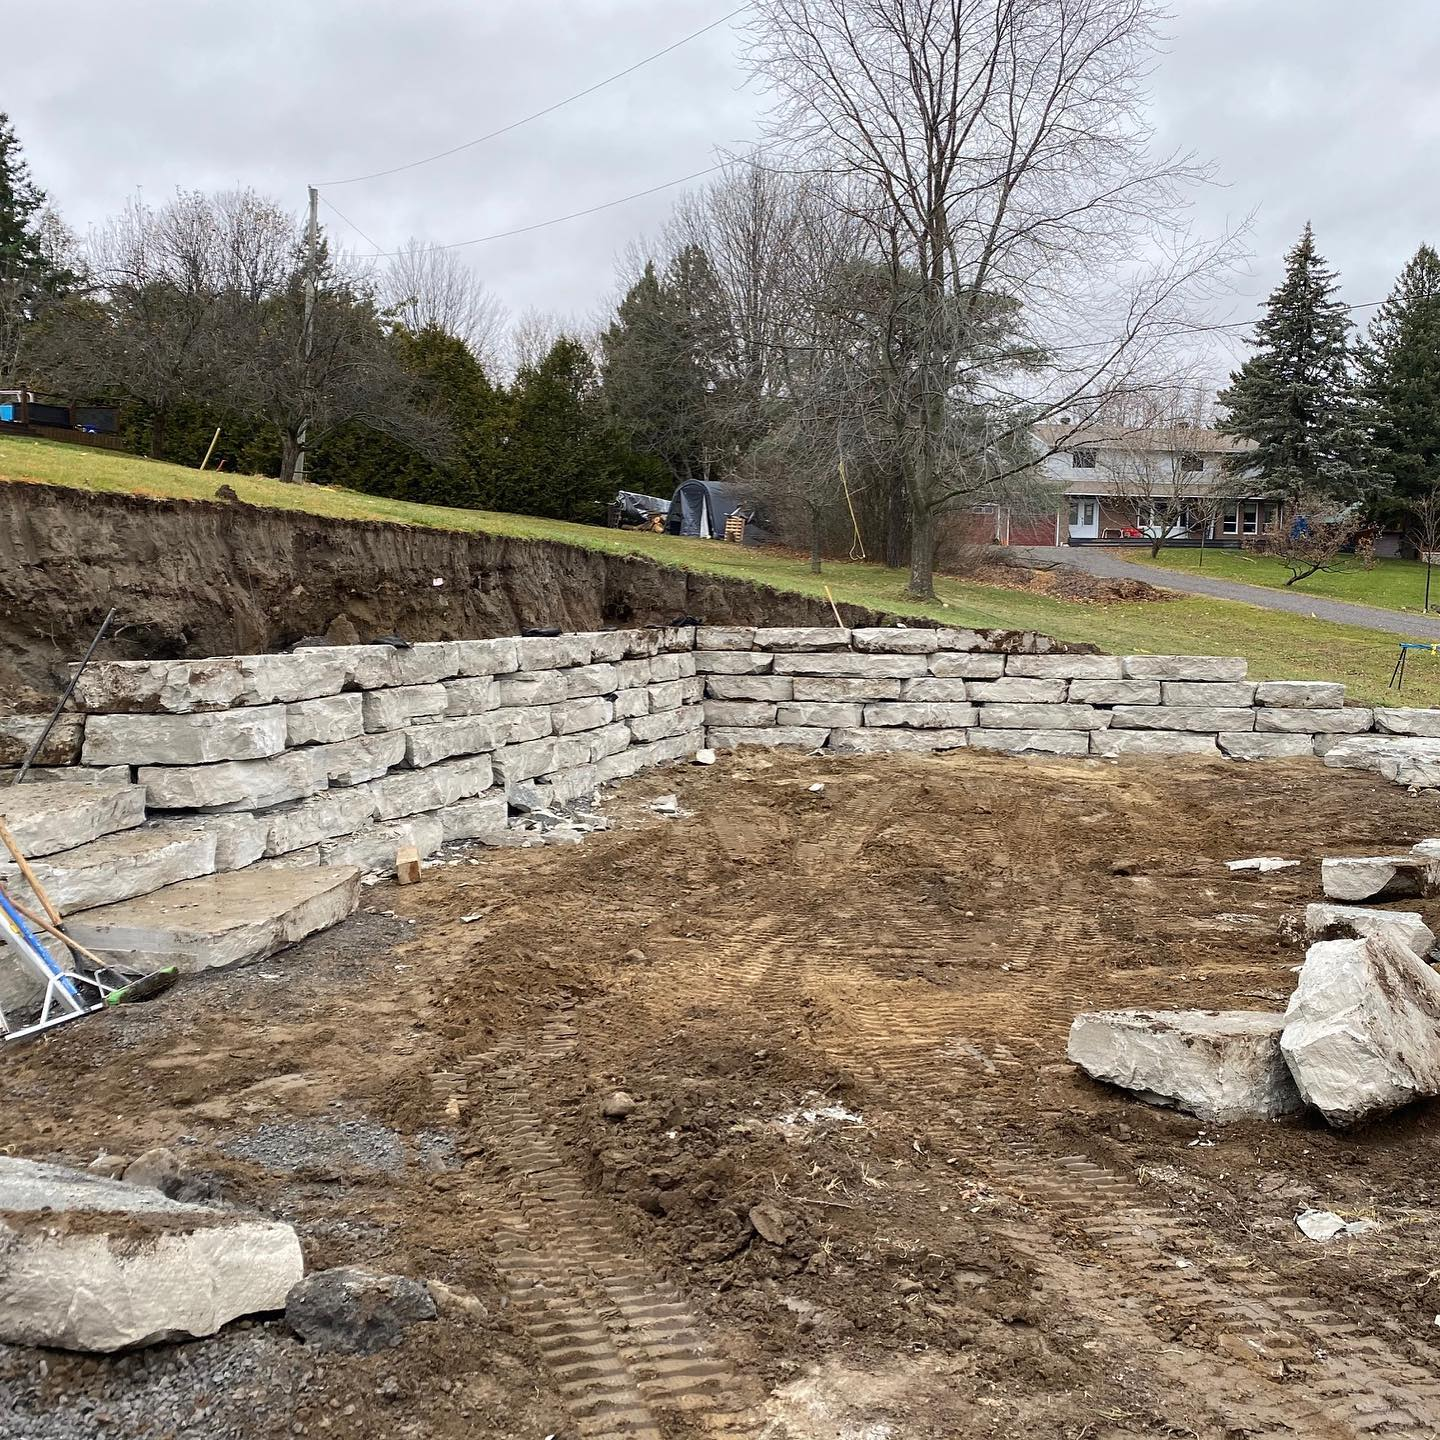 A retaining wall being built.